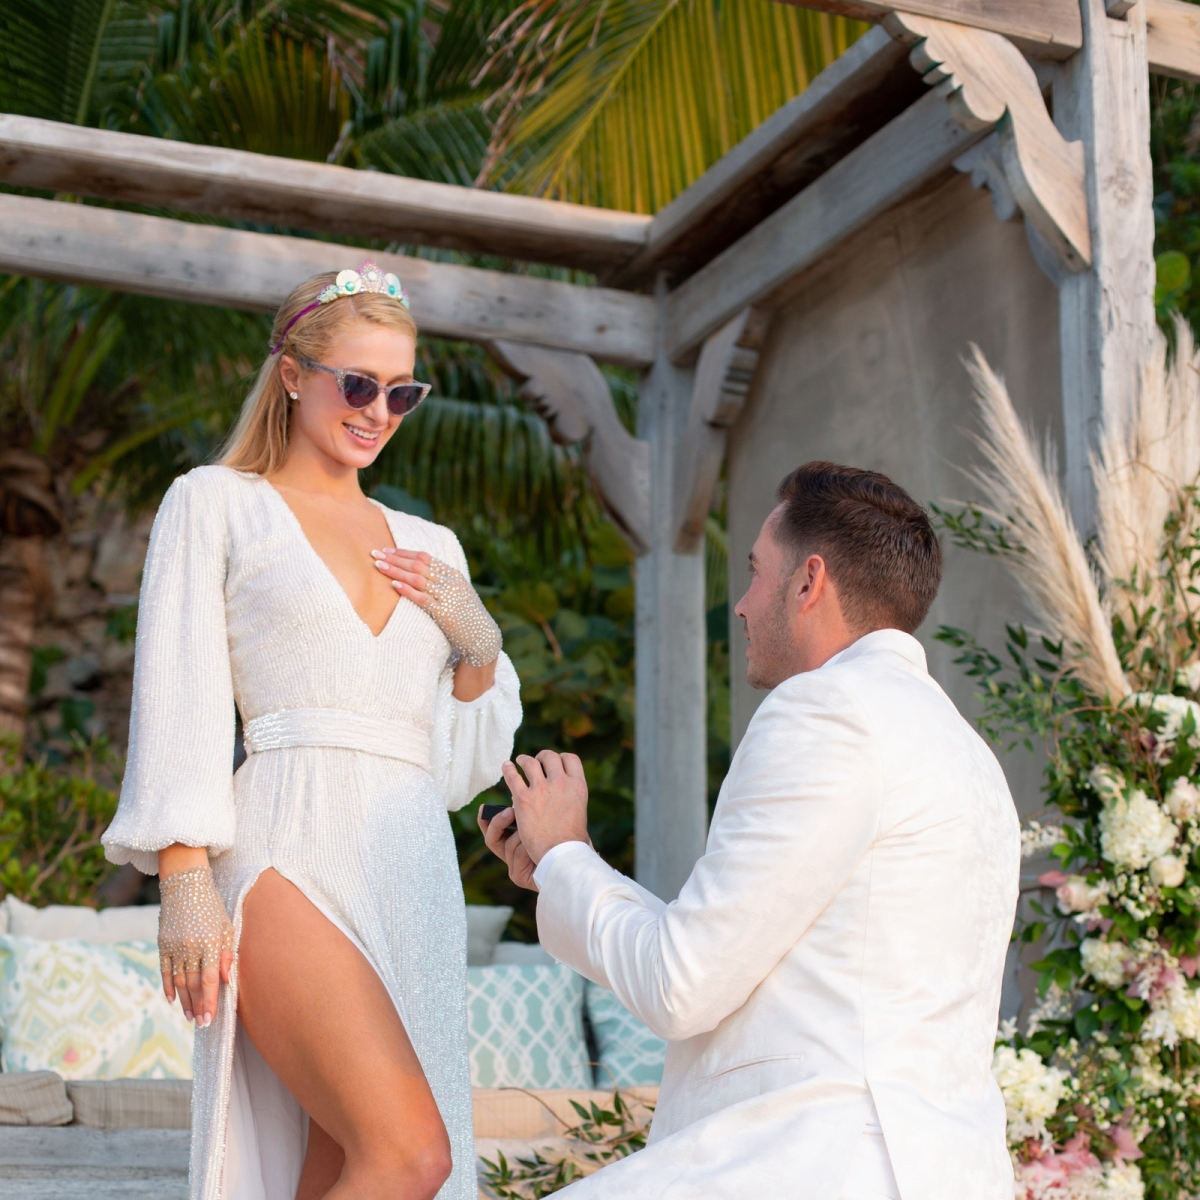 Paris Hilton confirms engagement with boyfriend Carter Reum, shares mushy pics